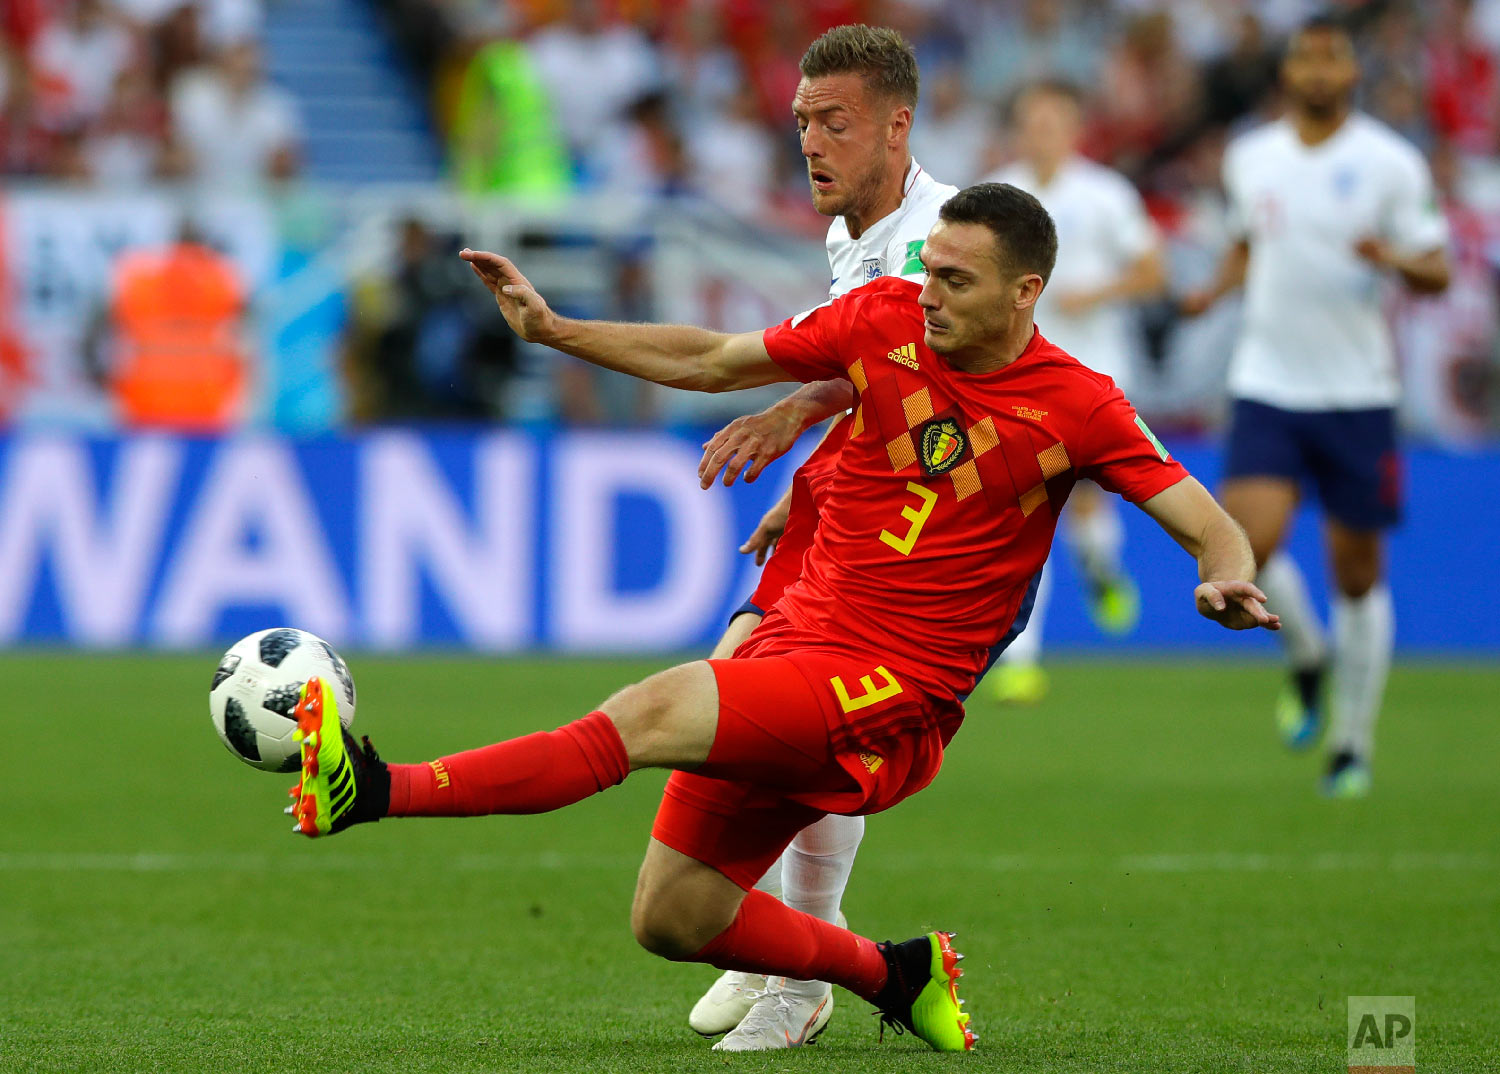 England's Jamie Vardy vies for the ball with Belgium's Thomas Vermaelen, right, during the group G match between England and Belgium at the 2018 soccer World Cup in the Kaliningrad Stadium in Kaliningrad, Russia, Thursday, June 28, 2018. (AP Photo/Alastair Grant)